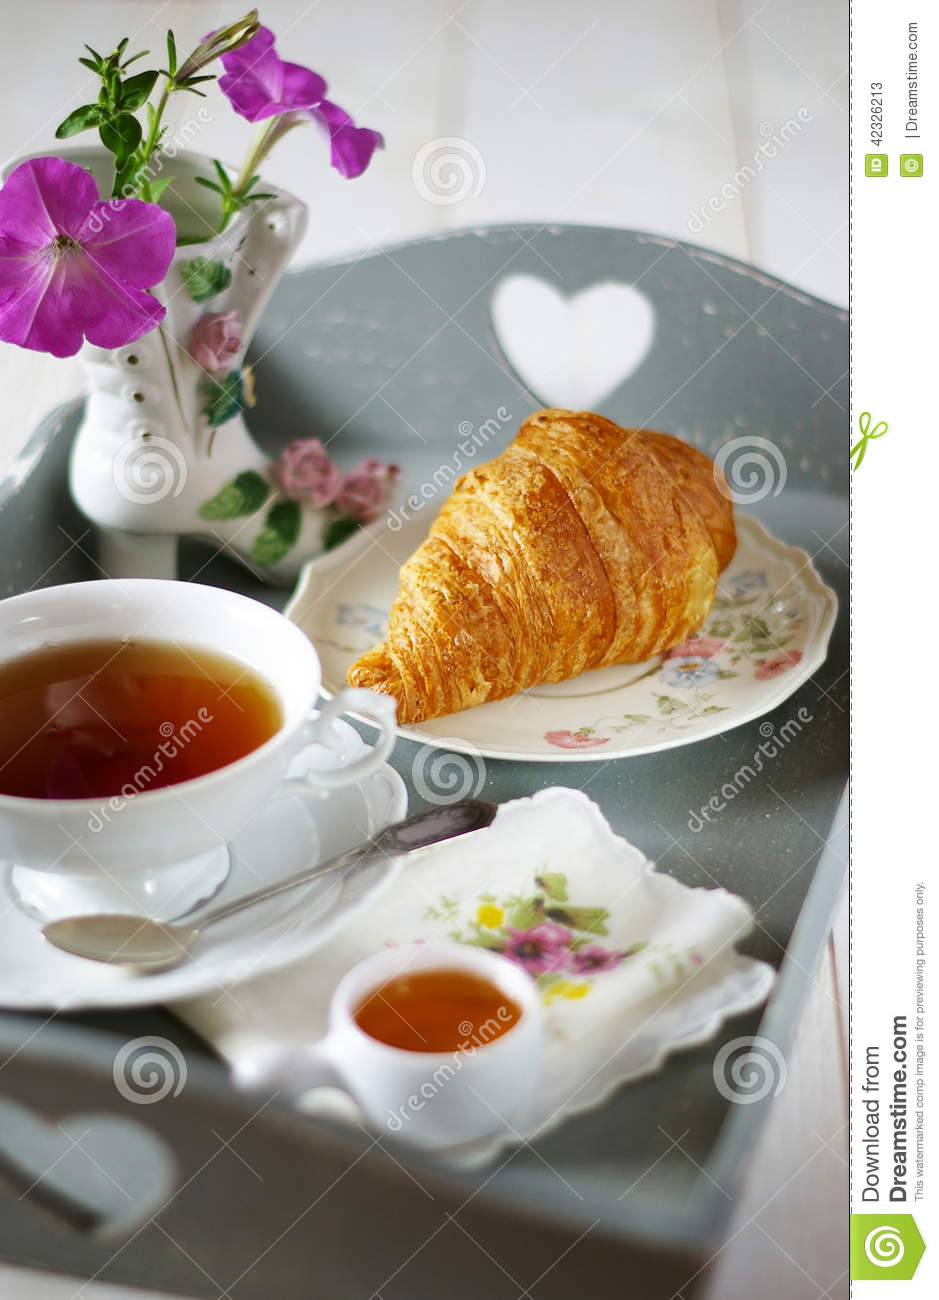 French Breakfast In Style Shabby Chic Stock Image Image Of Pink